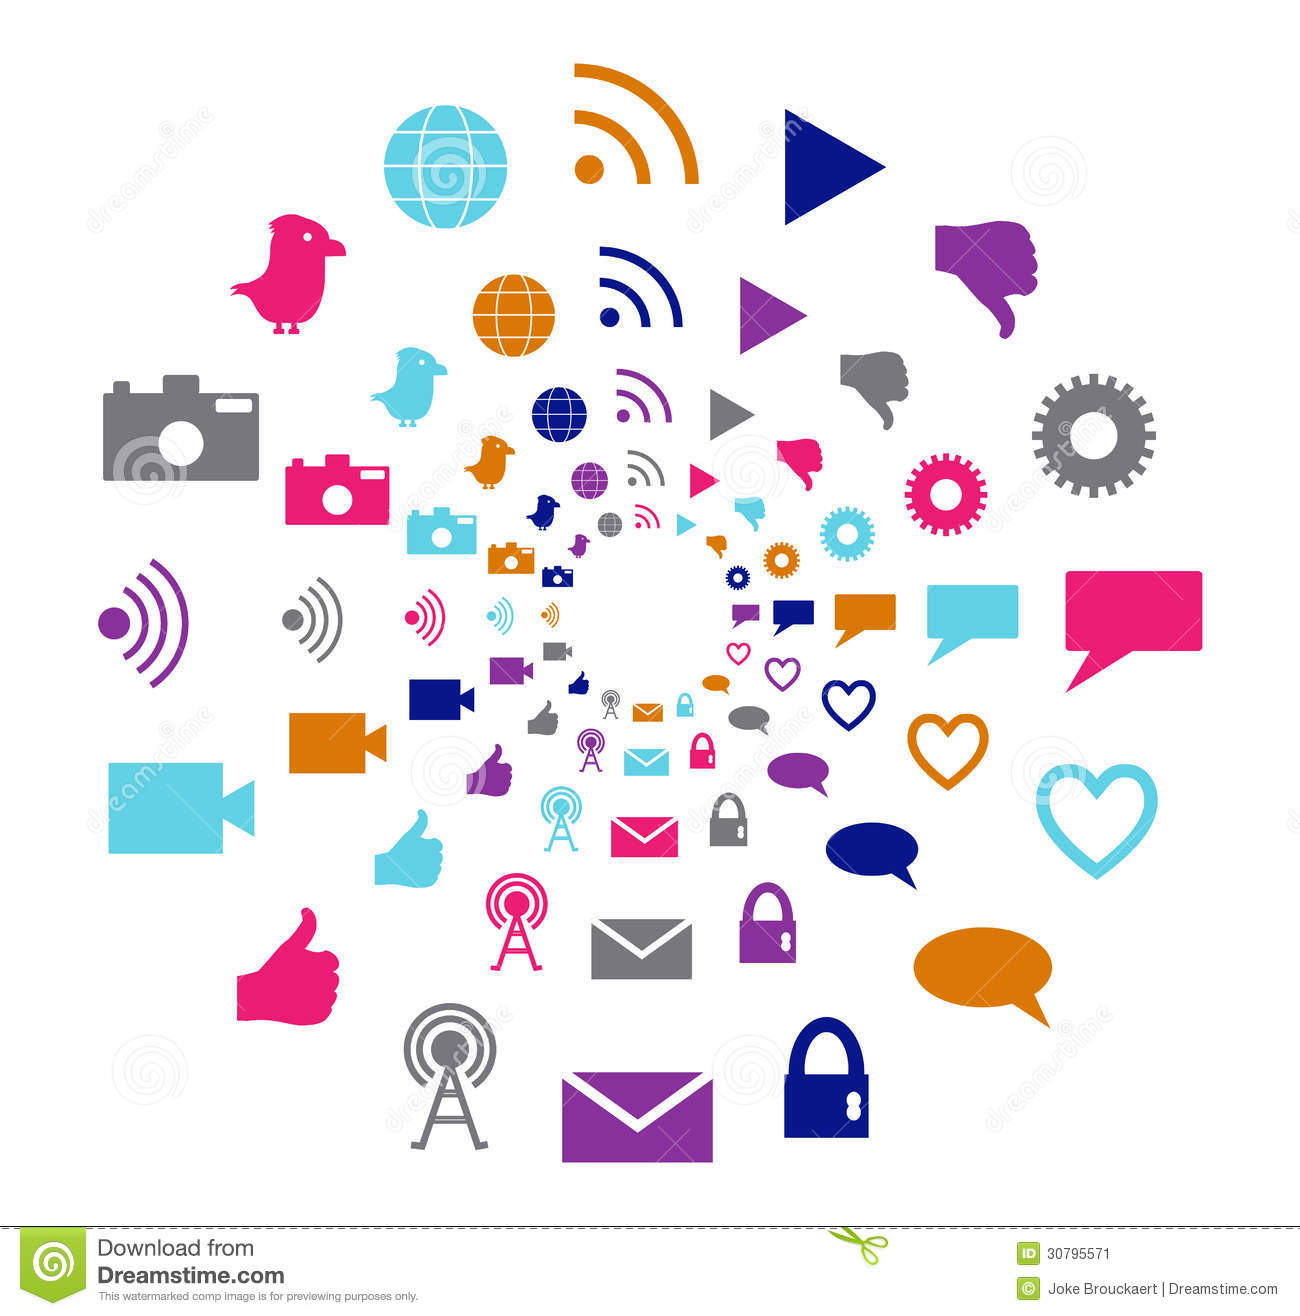 Social Technology And Media Motion Circle In Bright Colors